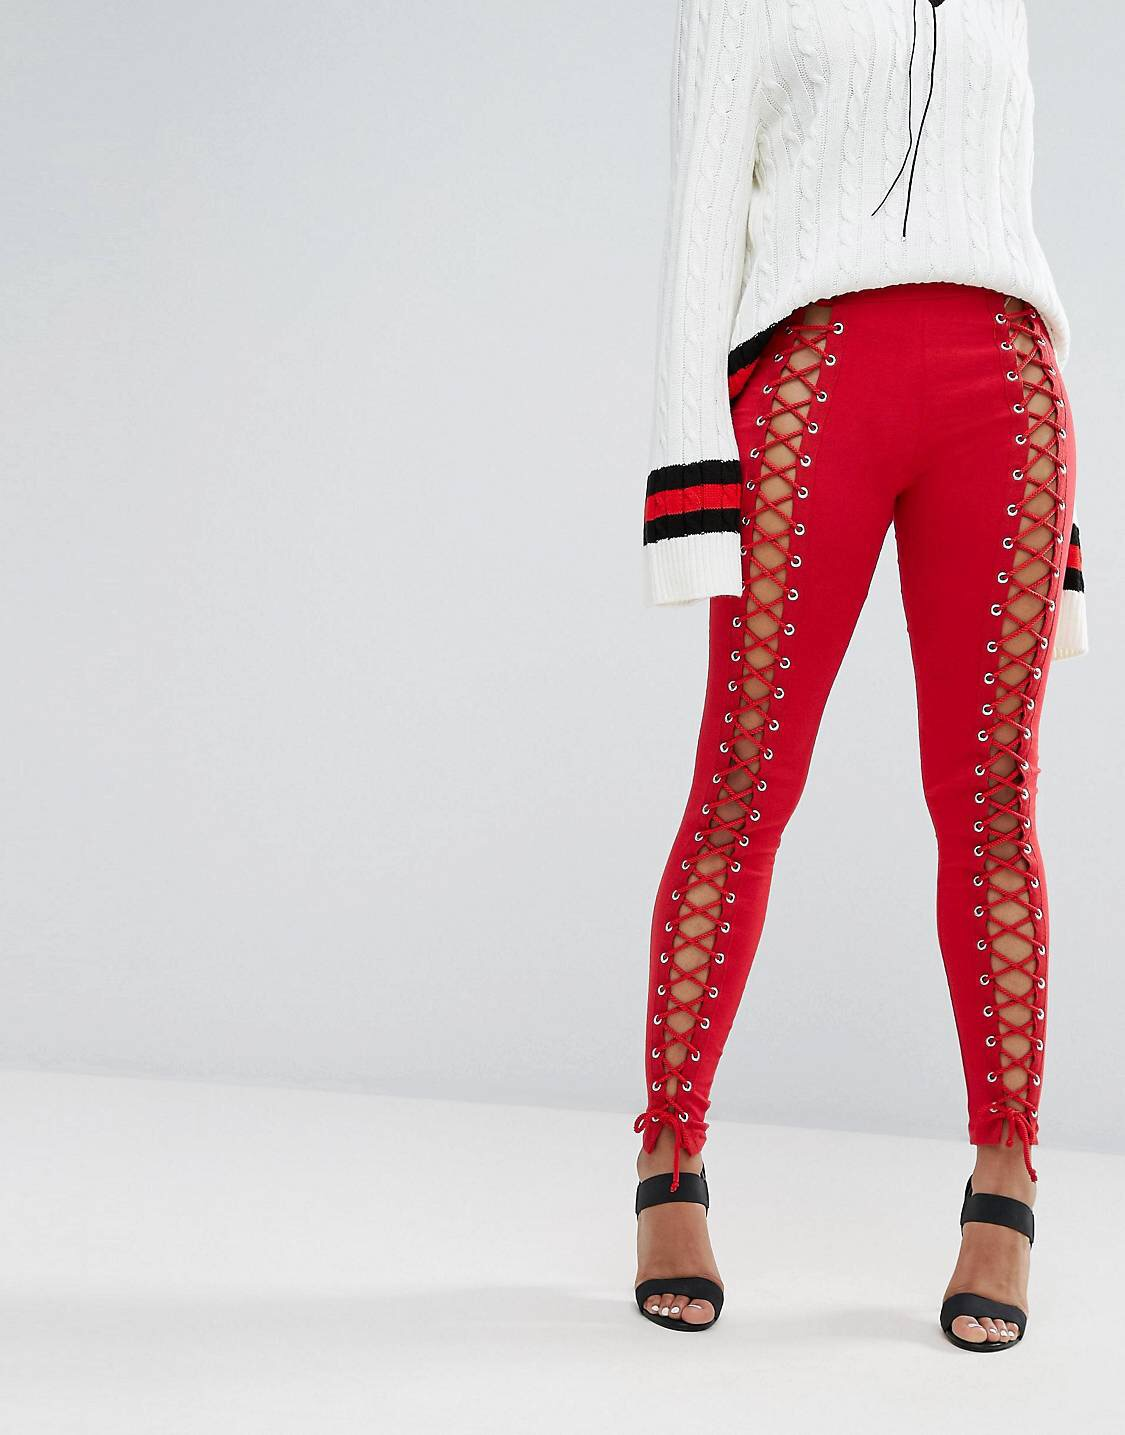 Leggings - I'm a little on the fence about these lace up leggings, they scream misbehave to me, but I honestly can't picture how I personally would rock em. So Ima pretend I'm styling my hot friend Rihanna.I'd all red it. Stick her in a matching red shirt, undo the buttons and over the shoulder it.Complete the look with a white shoelace choker tied into a bow.Hair? I'd high pony tail it.